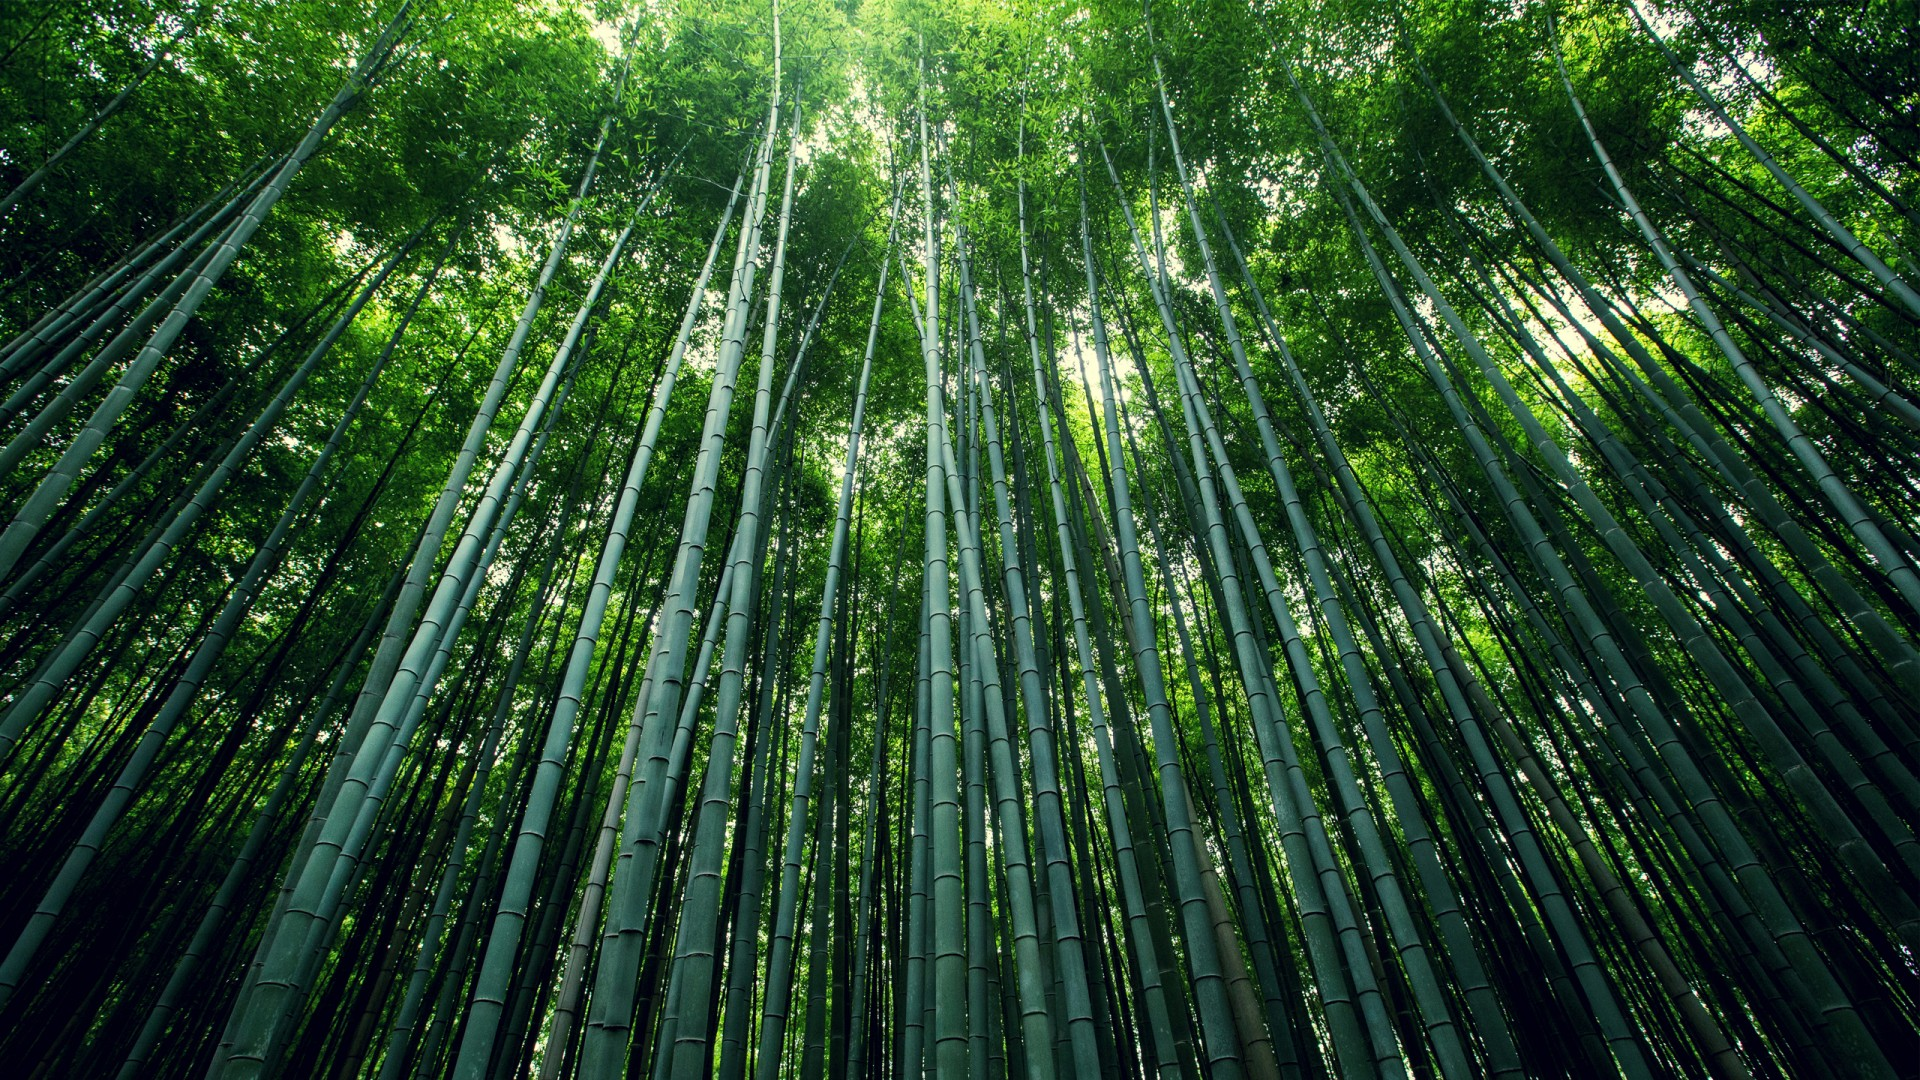 Fantasy Forest 3d Desktop Wallpaper Bamboo Forest Wallpapers Hd Wallpapers Id 15860